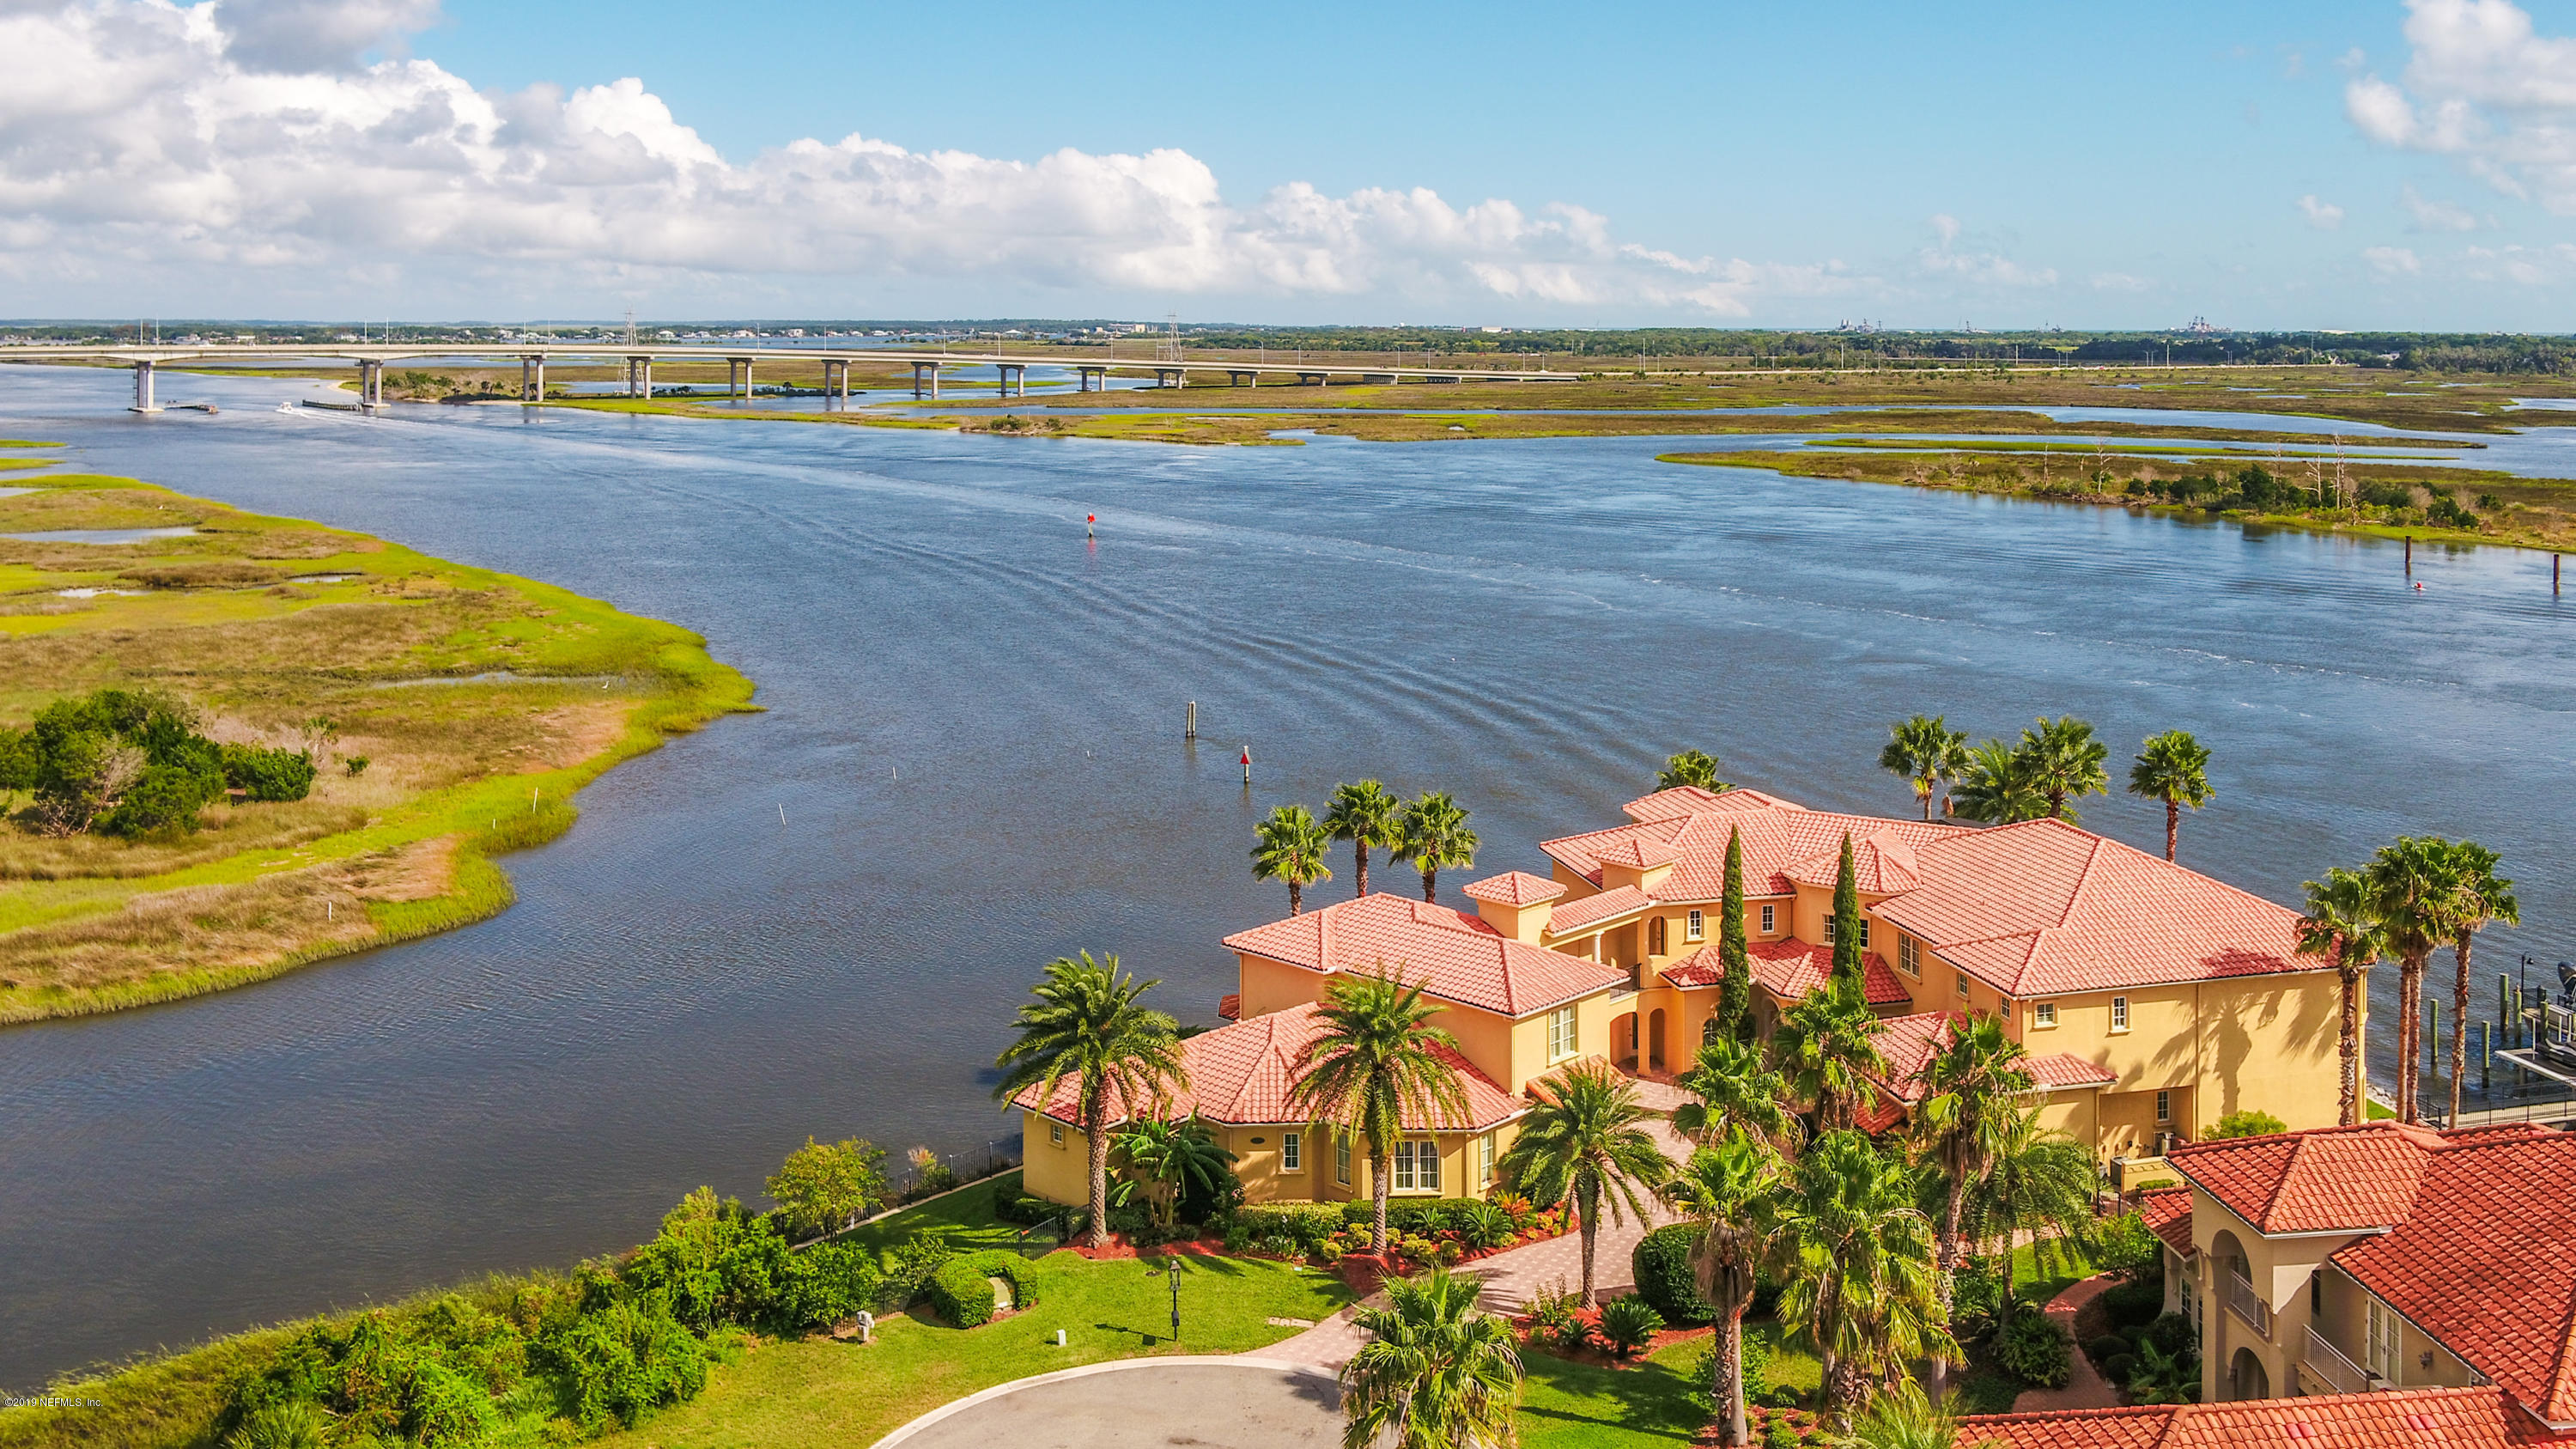 Boaters dream. LISTED UNDER APPRAISED VALUE! Closest home to the Atlantic Ocean in a Gated Community! You have seen this estate and you have dreamed about how it you could be yours. Now your dreams can come true. As you drive down the private oasis of ''The Island'' to your grand  home; you see beautiful Intracostal Waterway views to your right and to your left breathtaking nature. Privacy has never felt so exclusive as you enter your magnificent residence. Is it a boat and jet ski day? A soak up the sun day? Will you have a movie day? Or a pool day? How does it sound to have a lot of everything? This home offers it all and more. You truly can have it all.Luxury finishes coupled with functionality to make everyday life truly just another day in paradise.